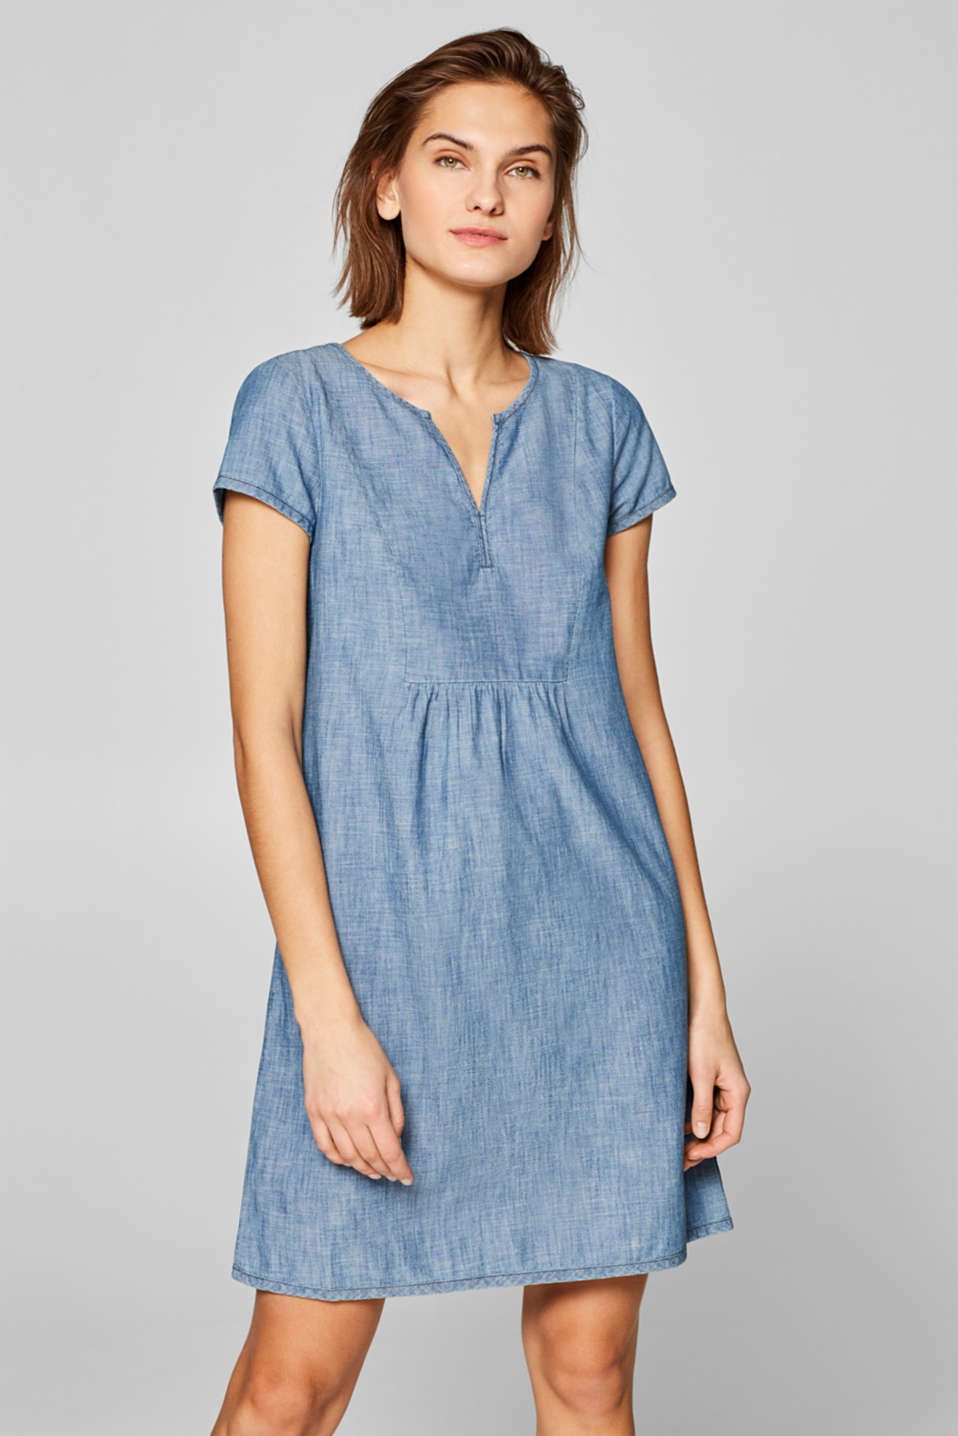 edc - Tunic dress in chambray, 100% cotton